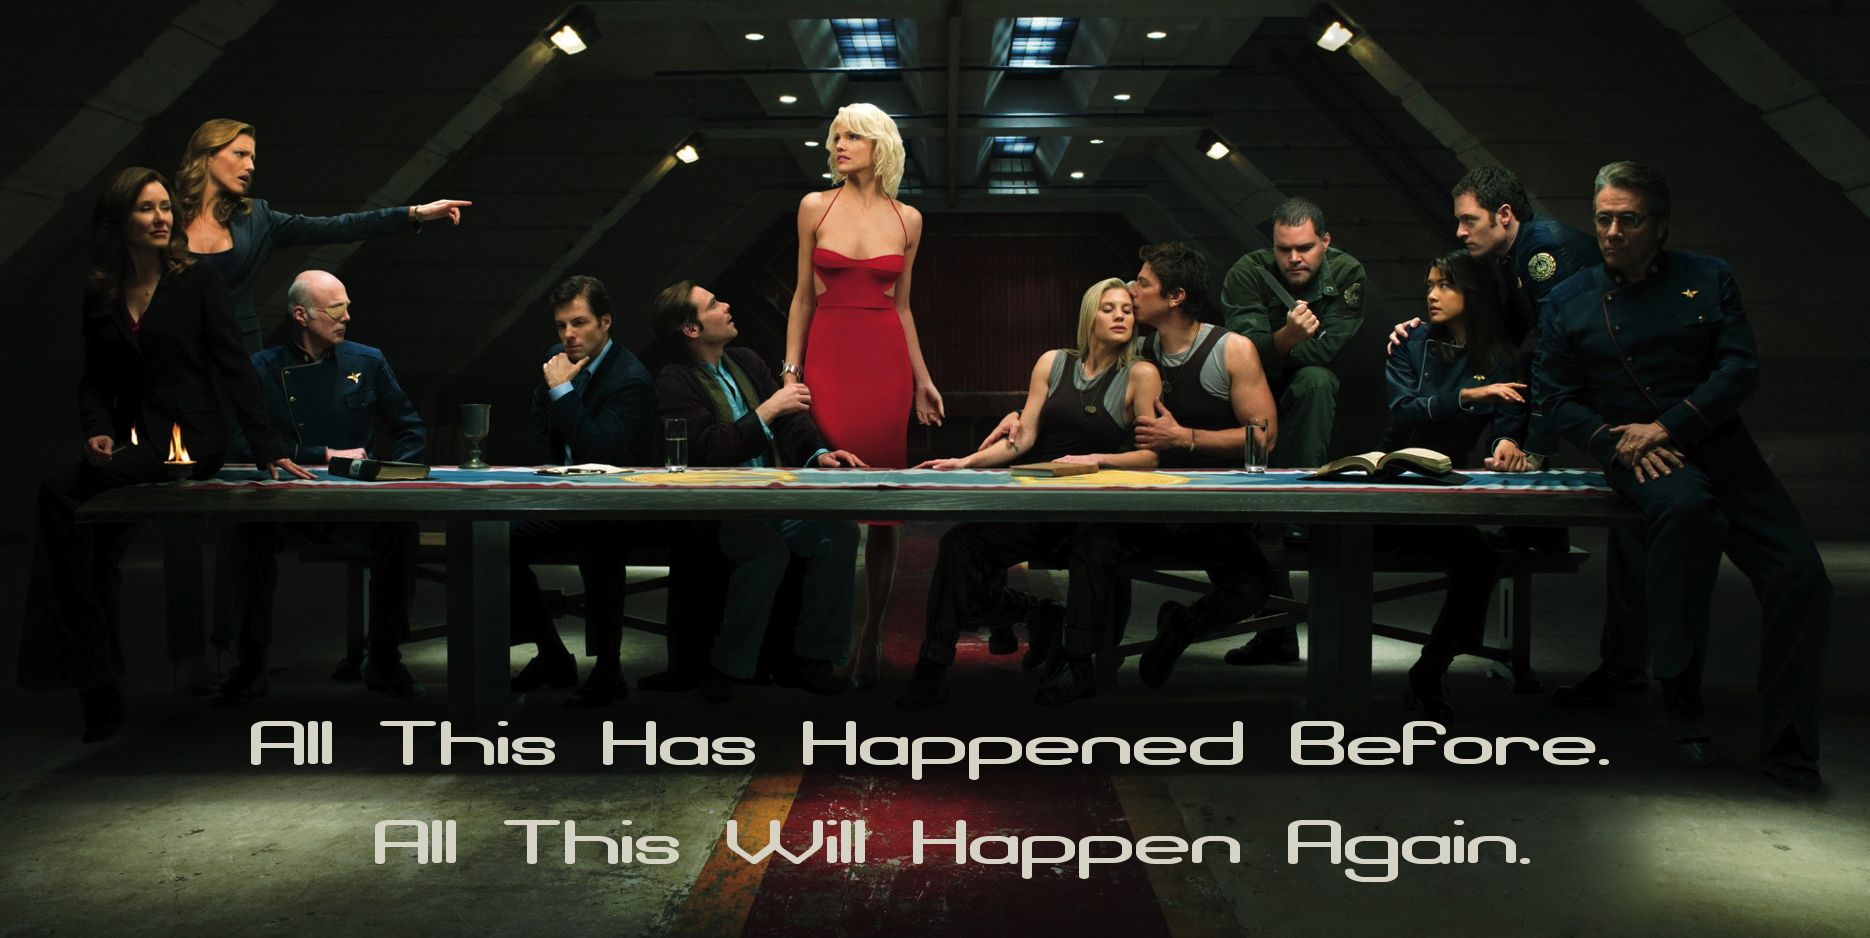 Battlestar Galactica All This Has Happened Before All This Will